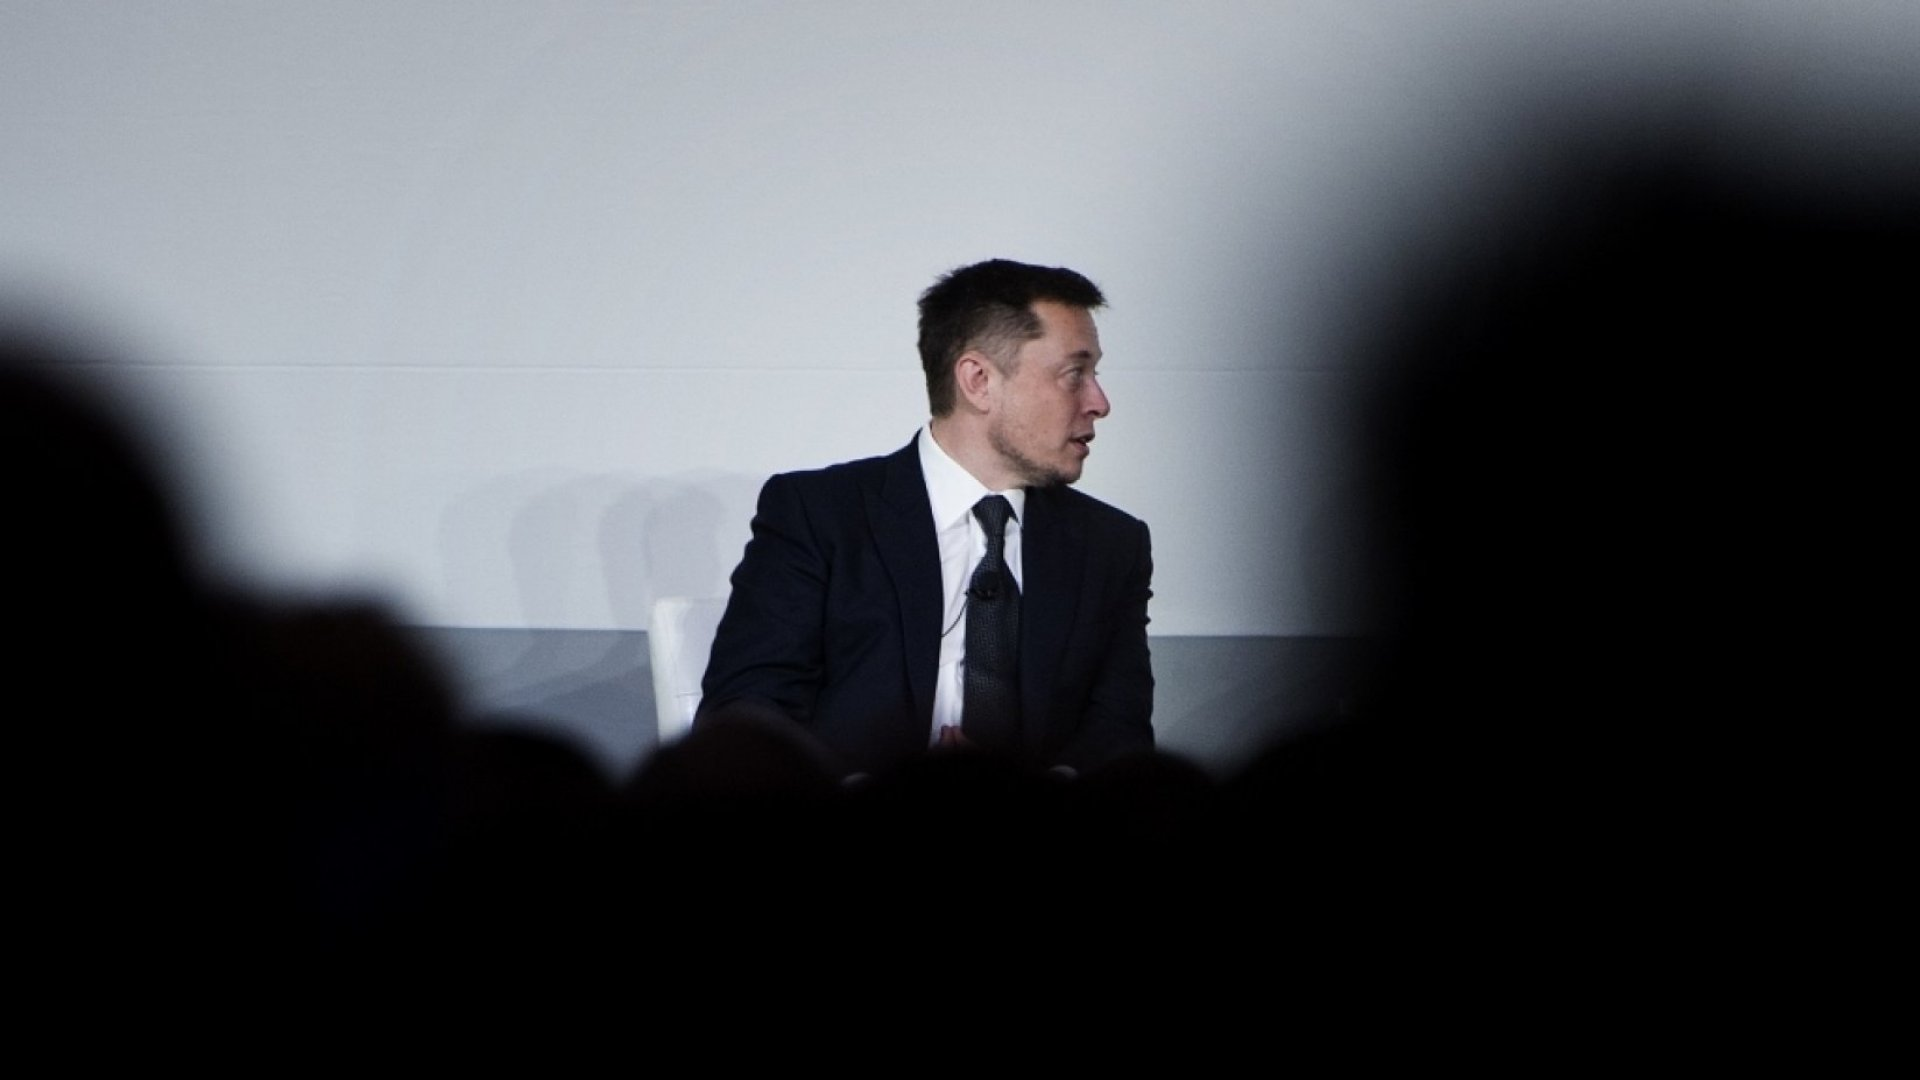 Elon Musk Wants to Take Humans to Mars by 2024, But His Plan Is Still Missing Some Crucial Details